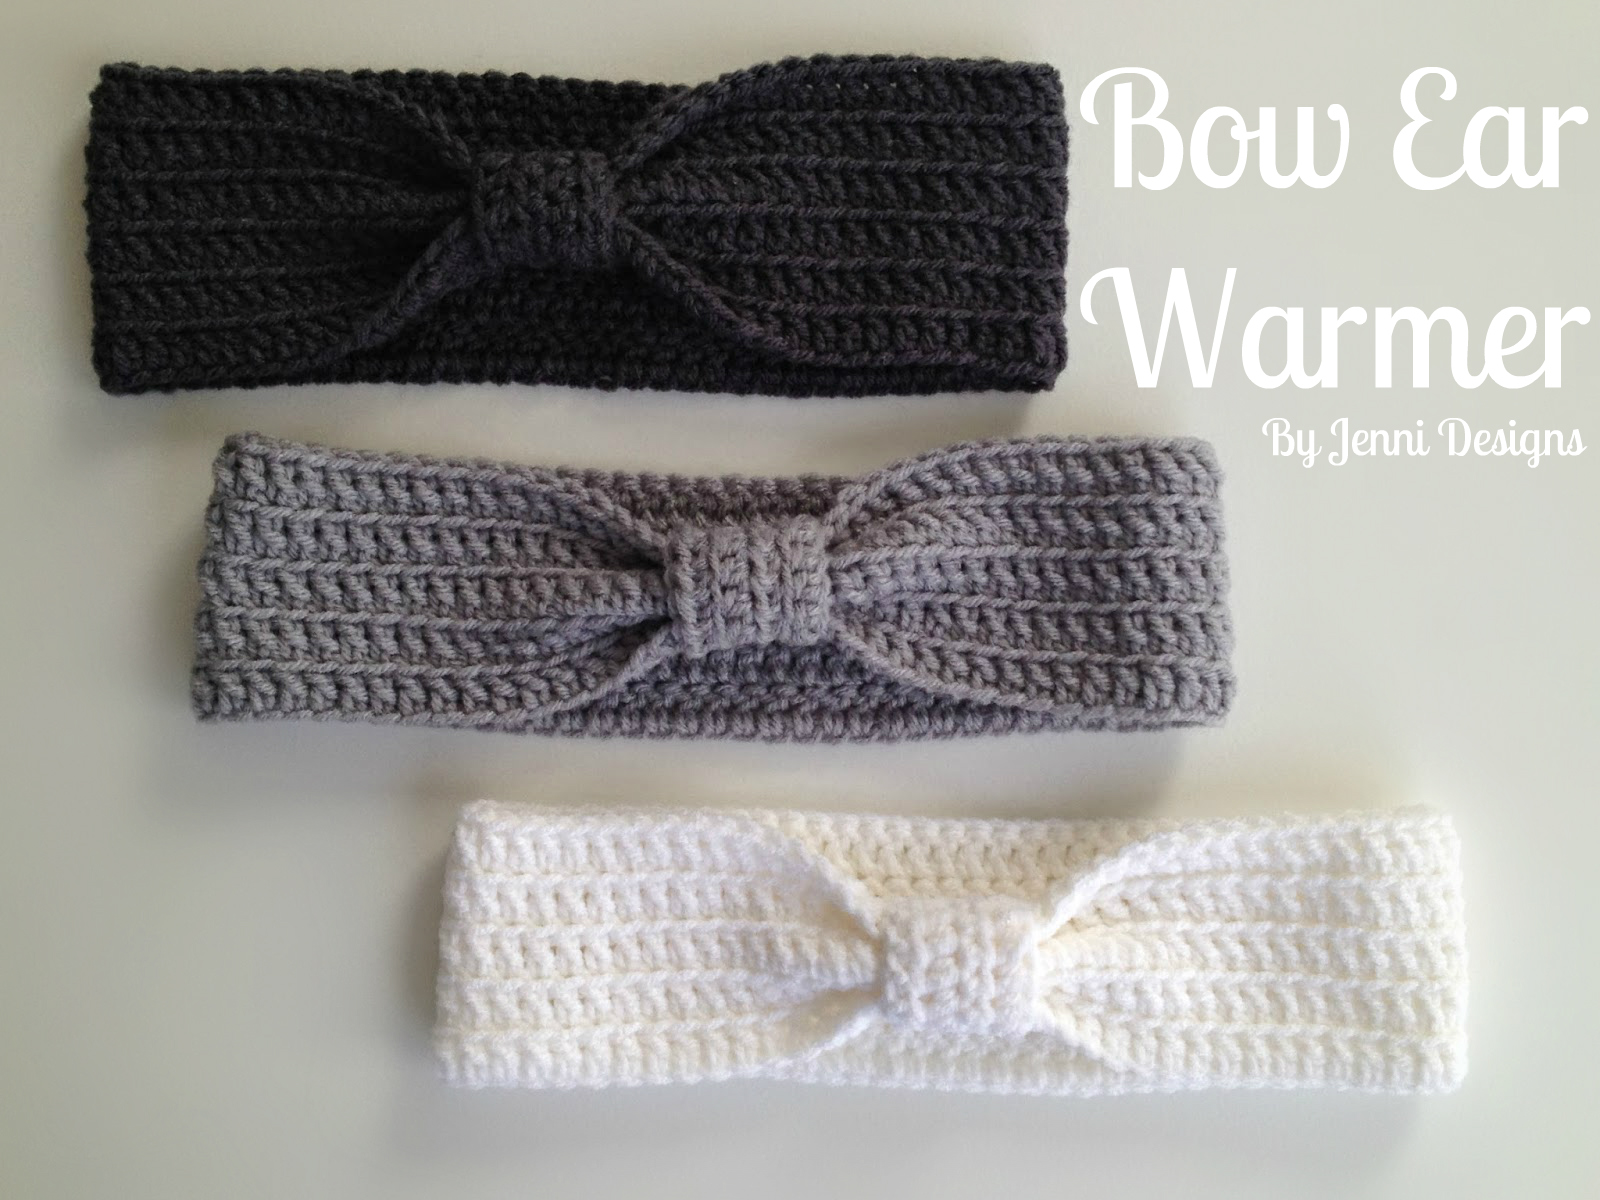 By jenni designs free crochet pattern bow ear warmer free crochet pattern bow ear warmer bankloansurffo Choice Image